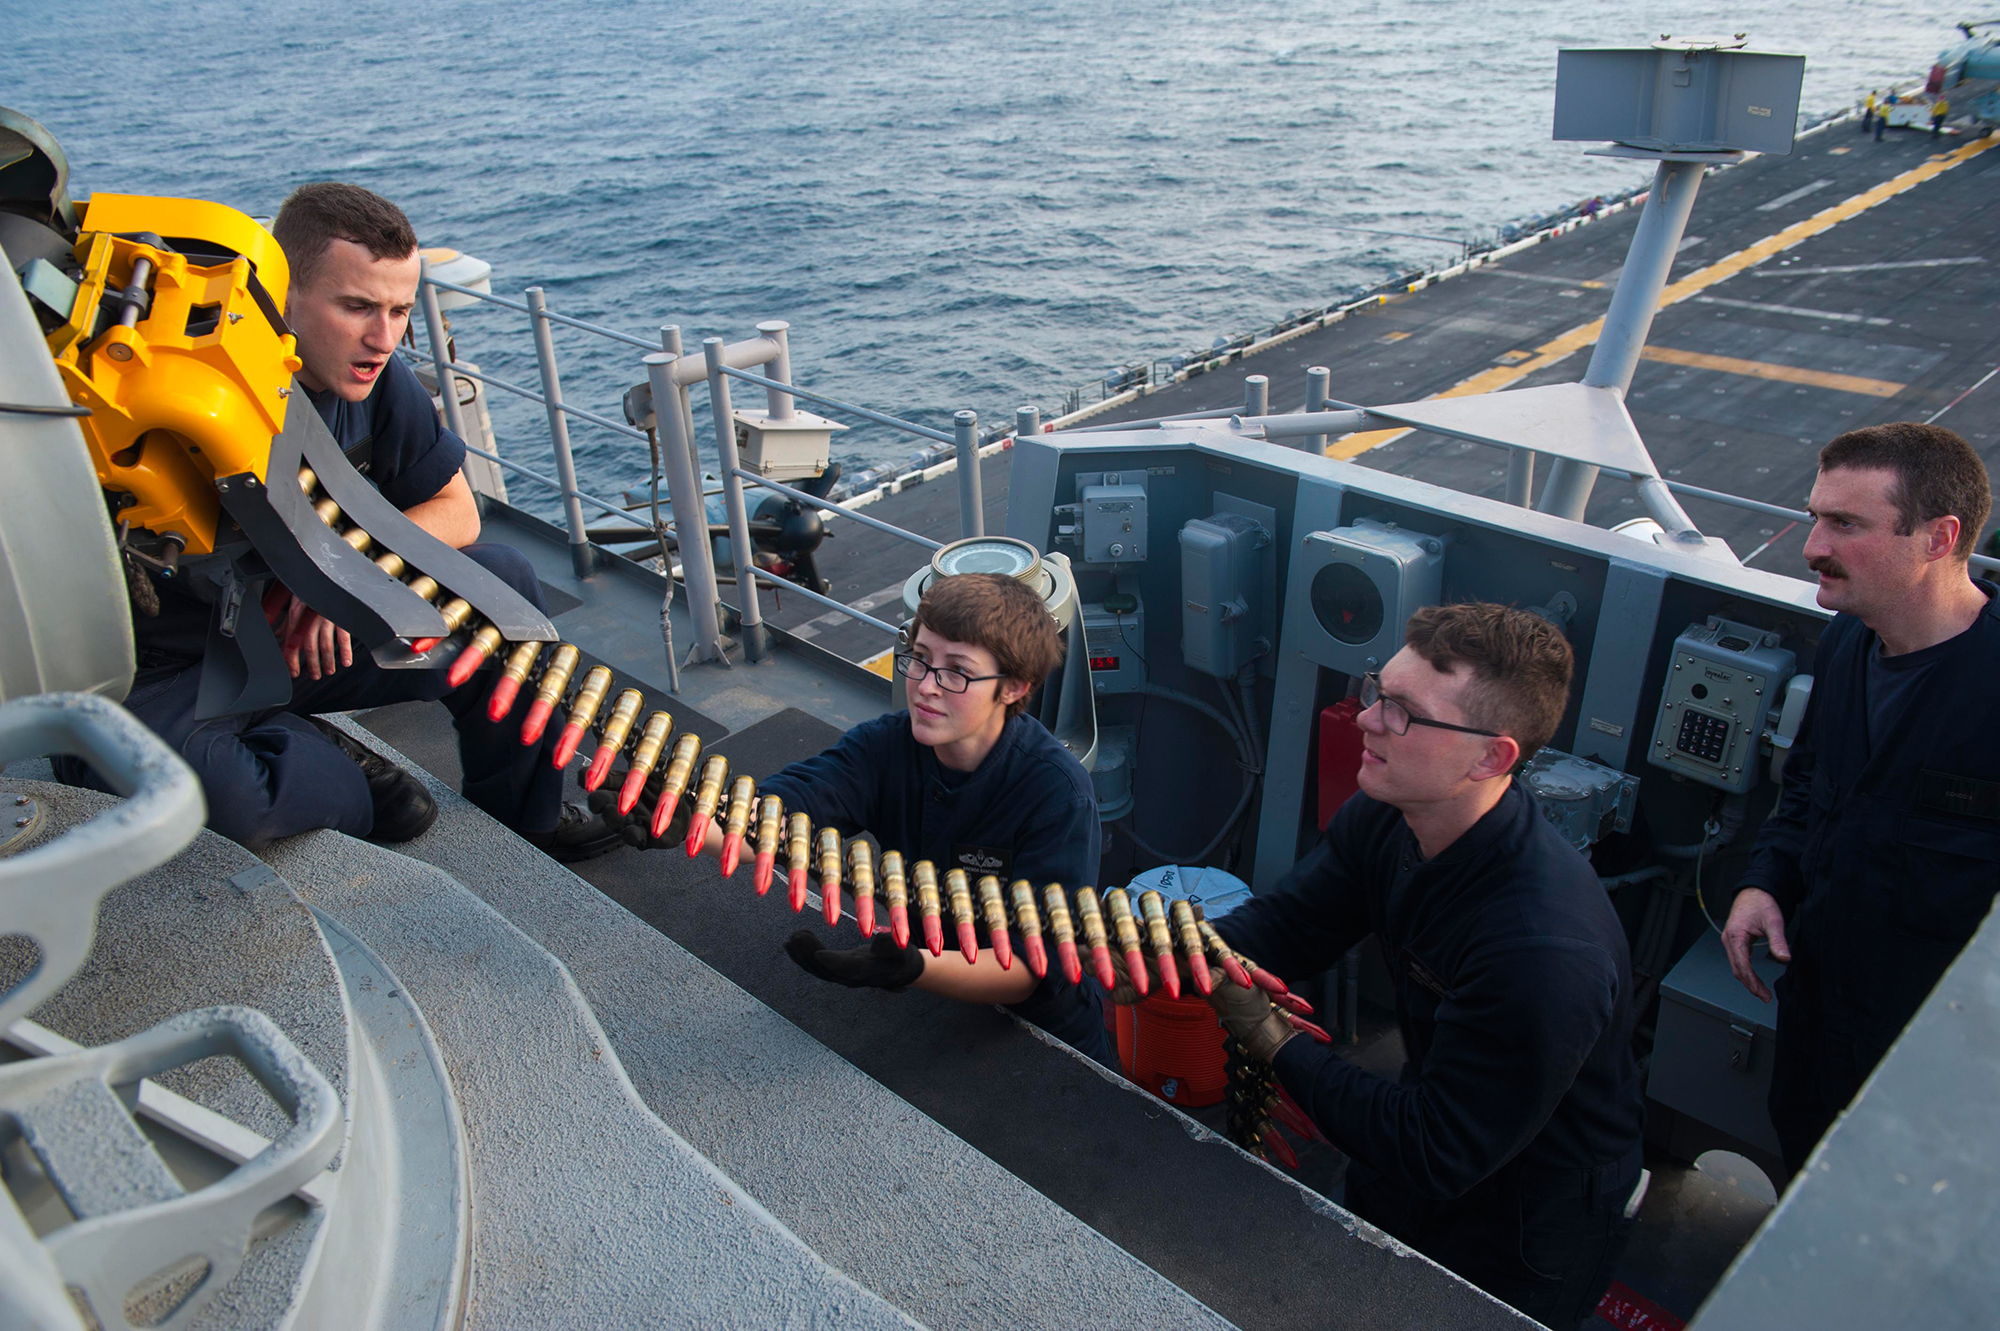 Sailors assigned to the command, control, communications, computers, collaboration and intelligence department aboard the amphibious assault ship USS America (LHA 6) load the forward closed-in weapons system with 20mm rounds in preparation for a live exercise on Dec. 20, 2017, in the Indian Ocean. (Mass Communication Specialist Seaman Daniel Pastor/Navy)